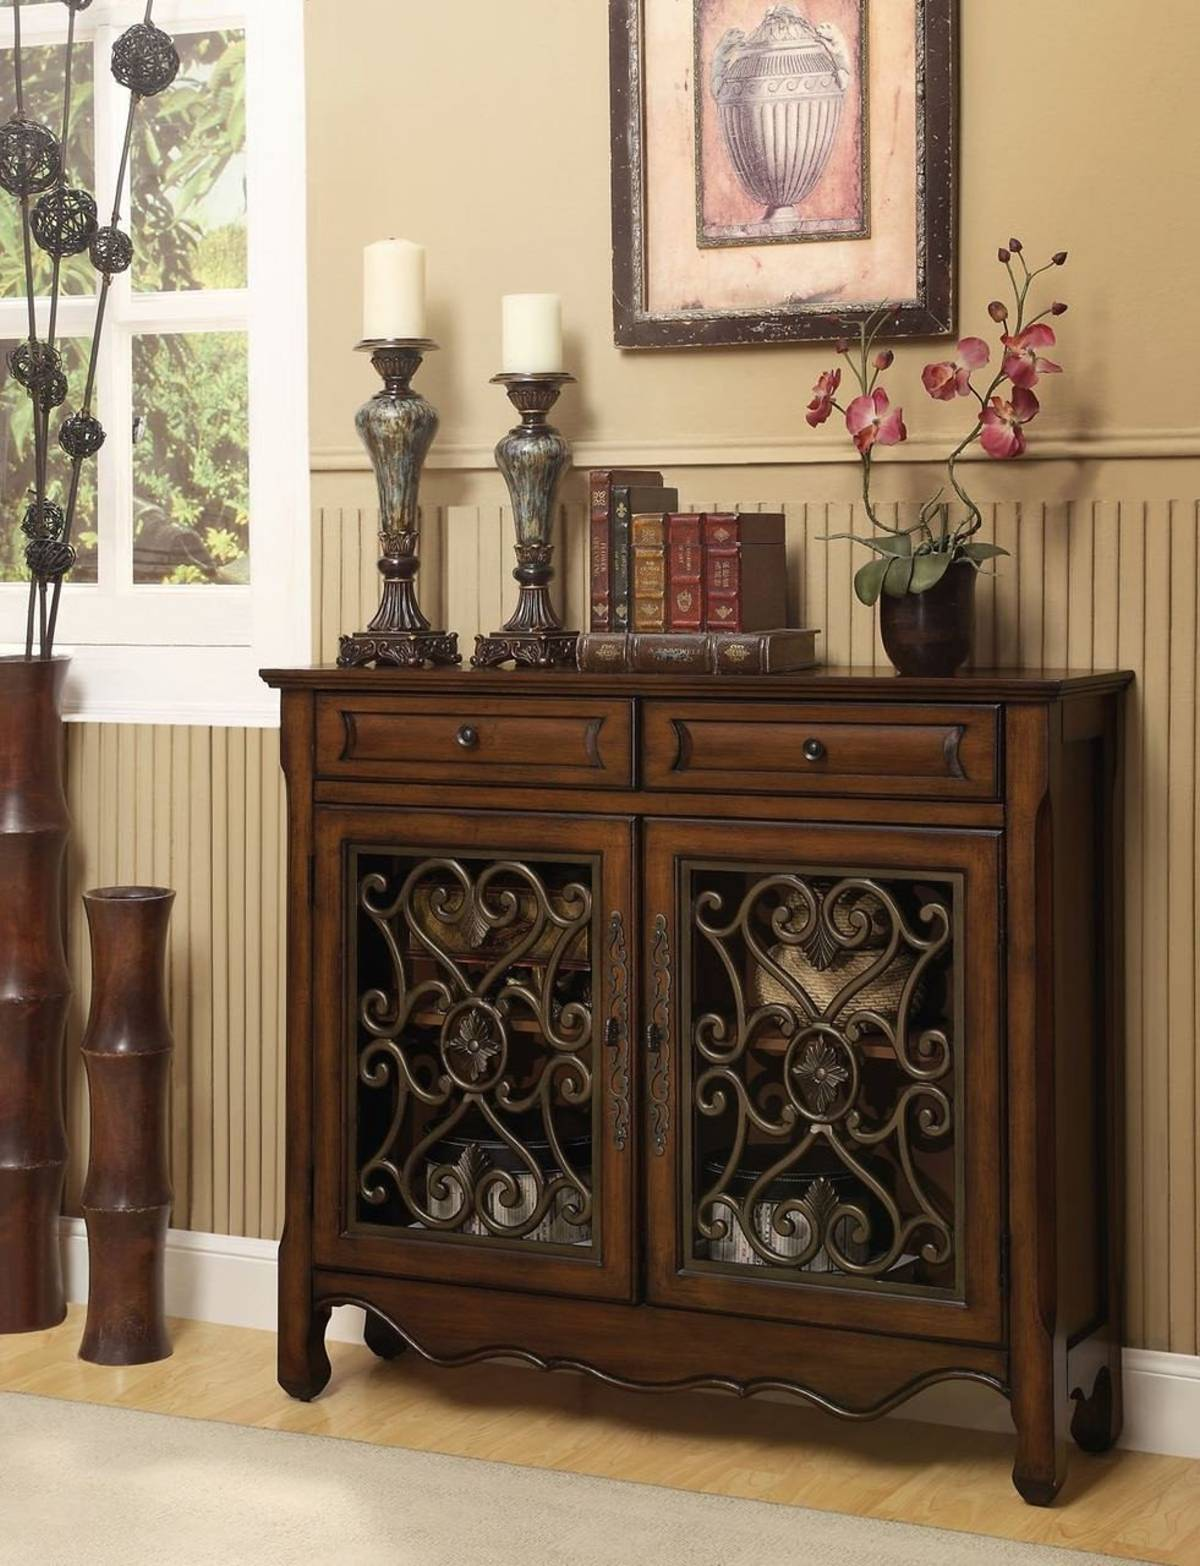 56416 Cupboard Hollin Brown & Bronze Metal Cupboard $305